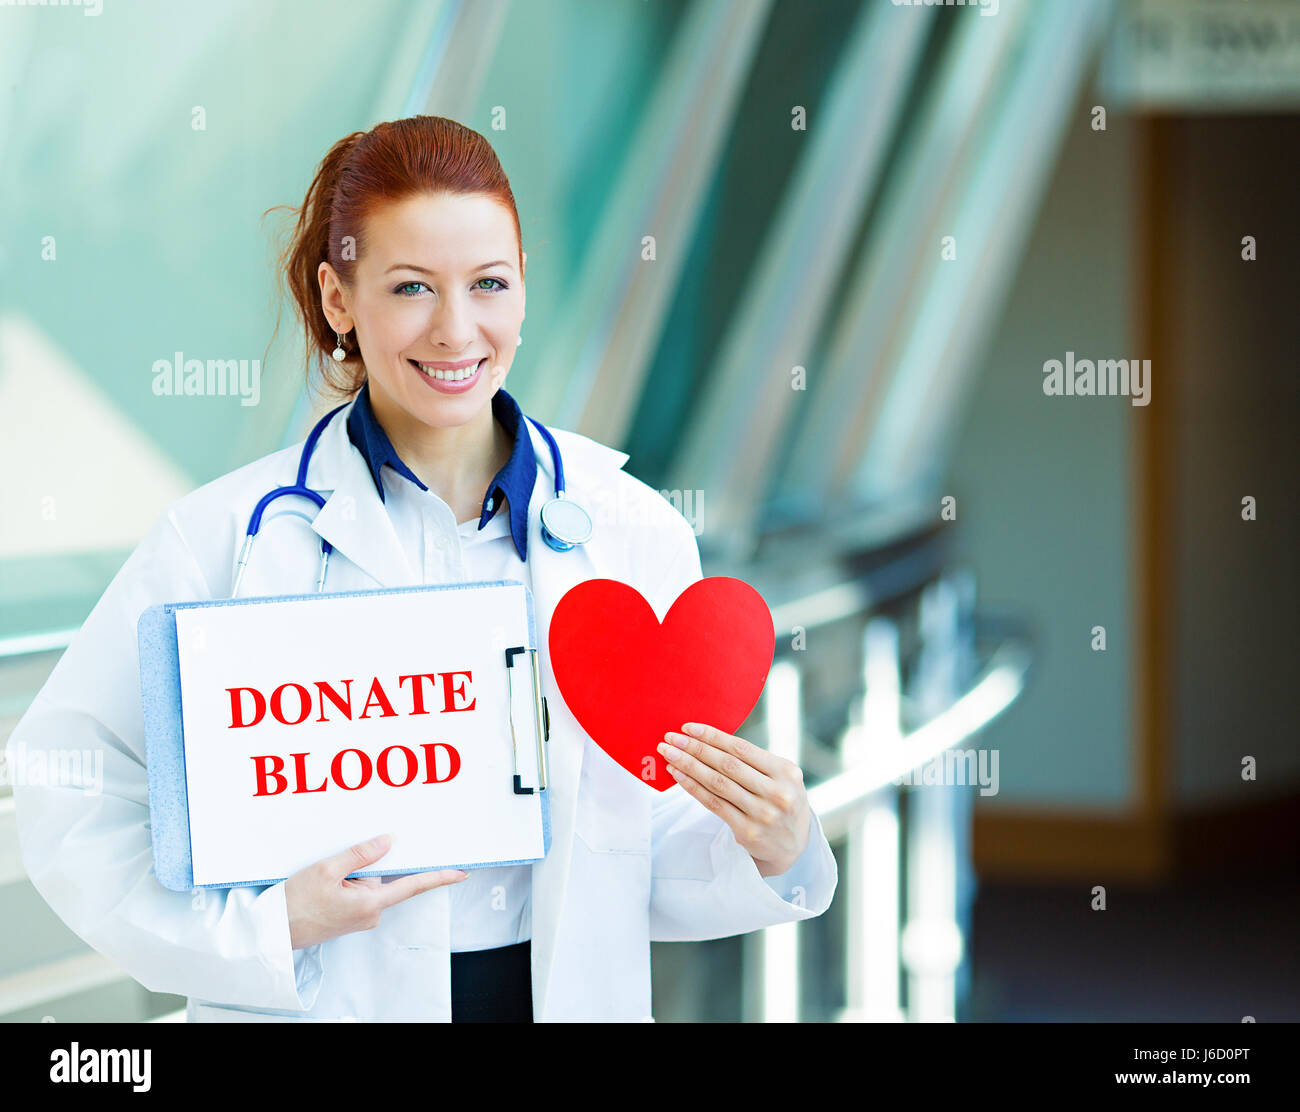 Closeup portrait happy smiling female health care professional woman doctor, transfusion medicine specialist holding - Stock Image